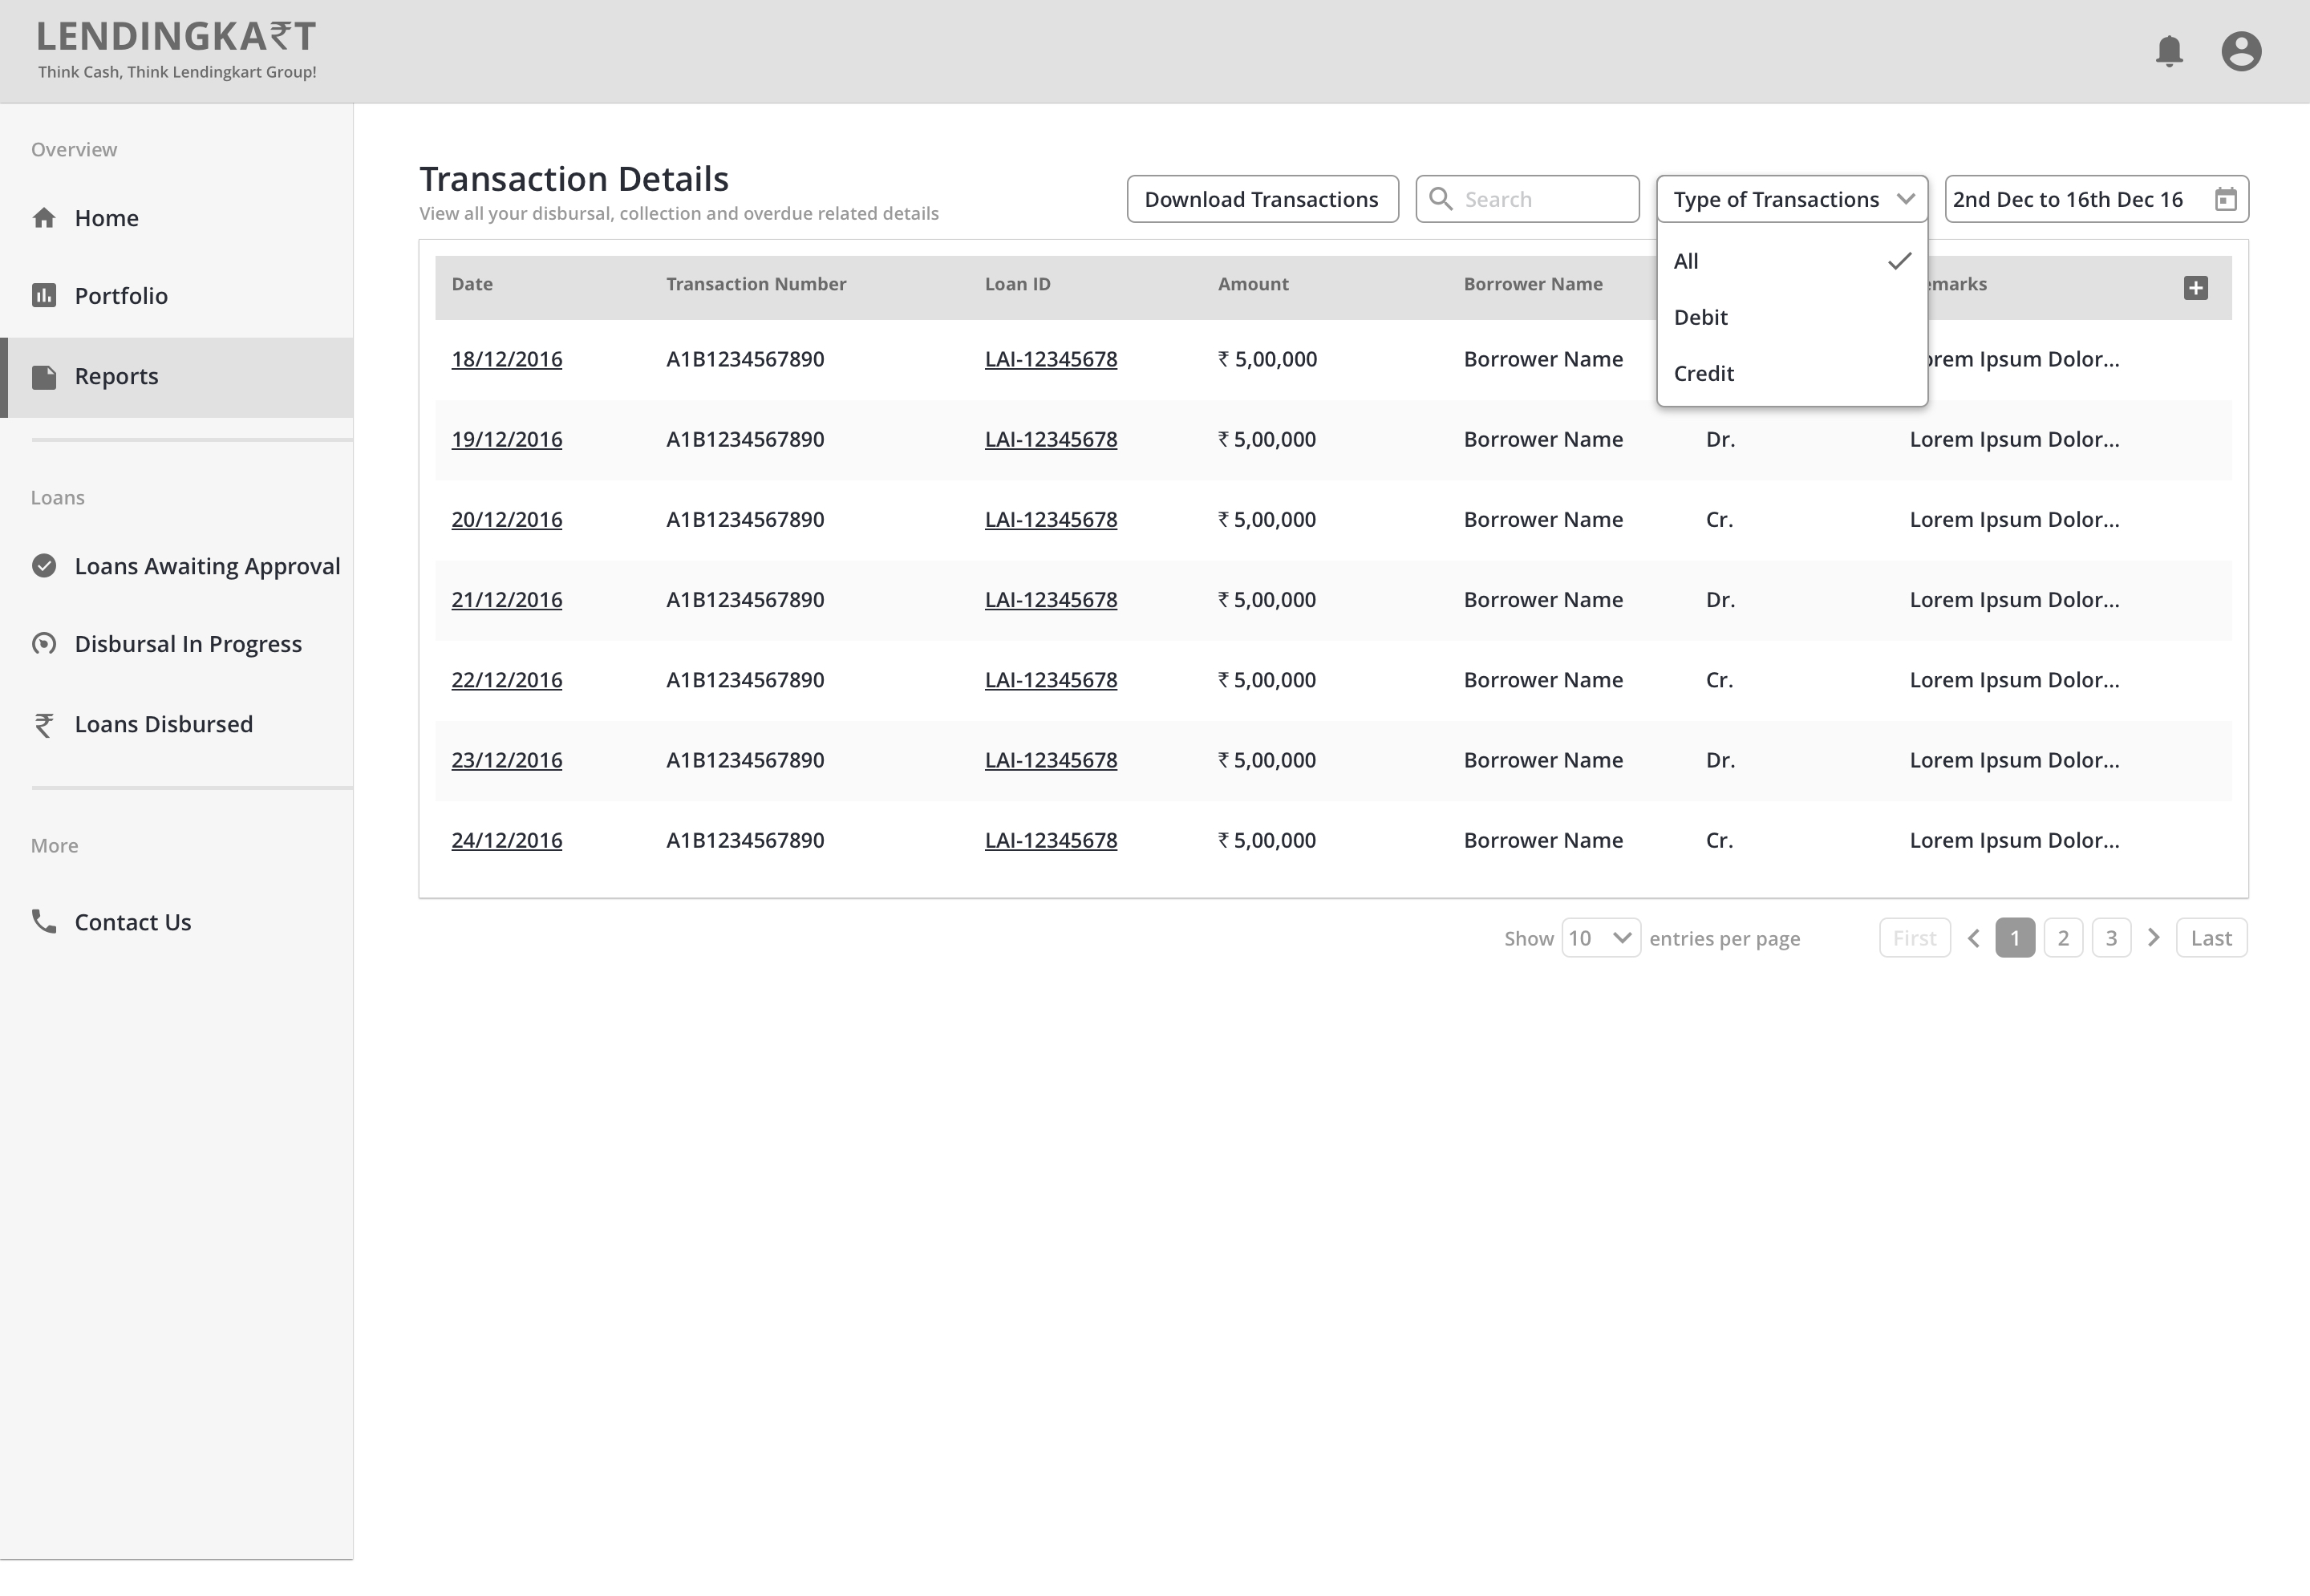 Dezinr-LendersDashboard-3.3 Reports Screen - Transaction Type